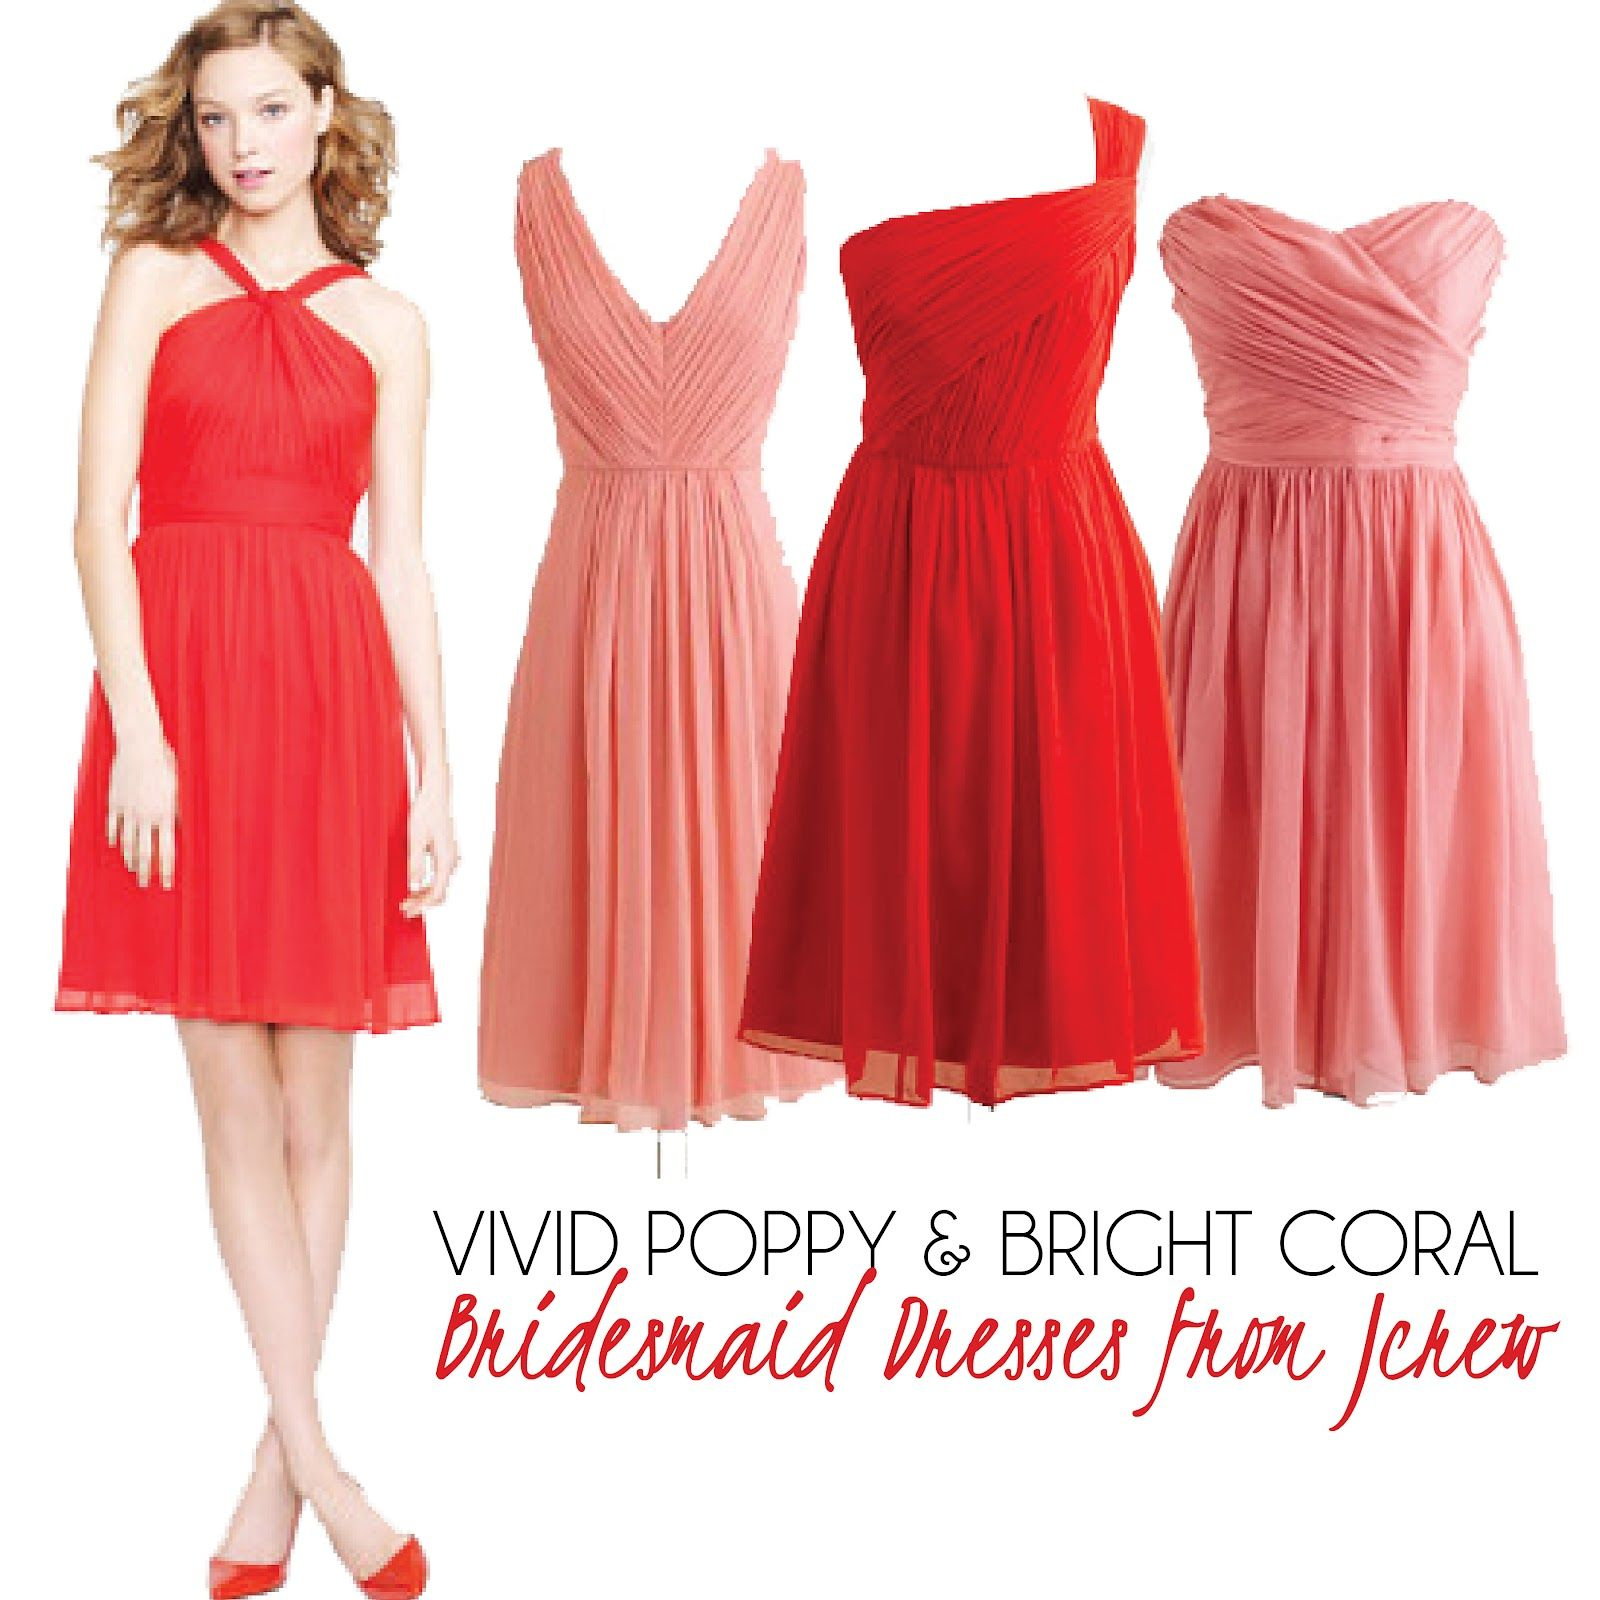 coral dress for wedding Poppy Bridesmaid Dress Summer Bridesmaid Dresses Coral Bridesmaids Coral Dress Bridesmaid Ideas Wedding Colors Wedding Styles Poppies Wednesday